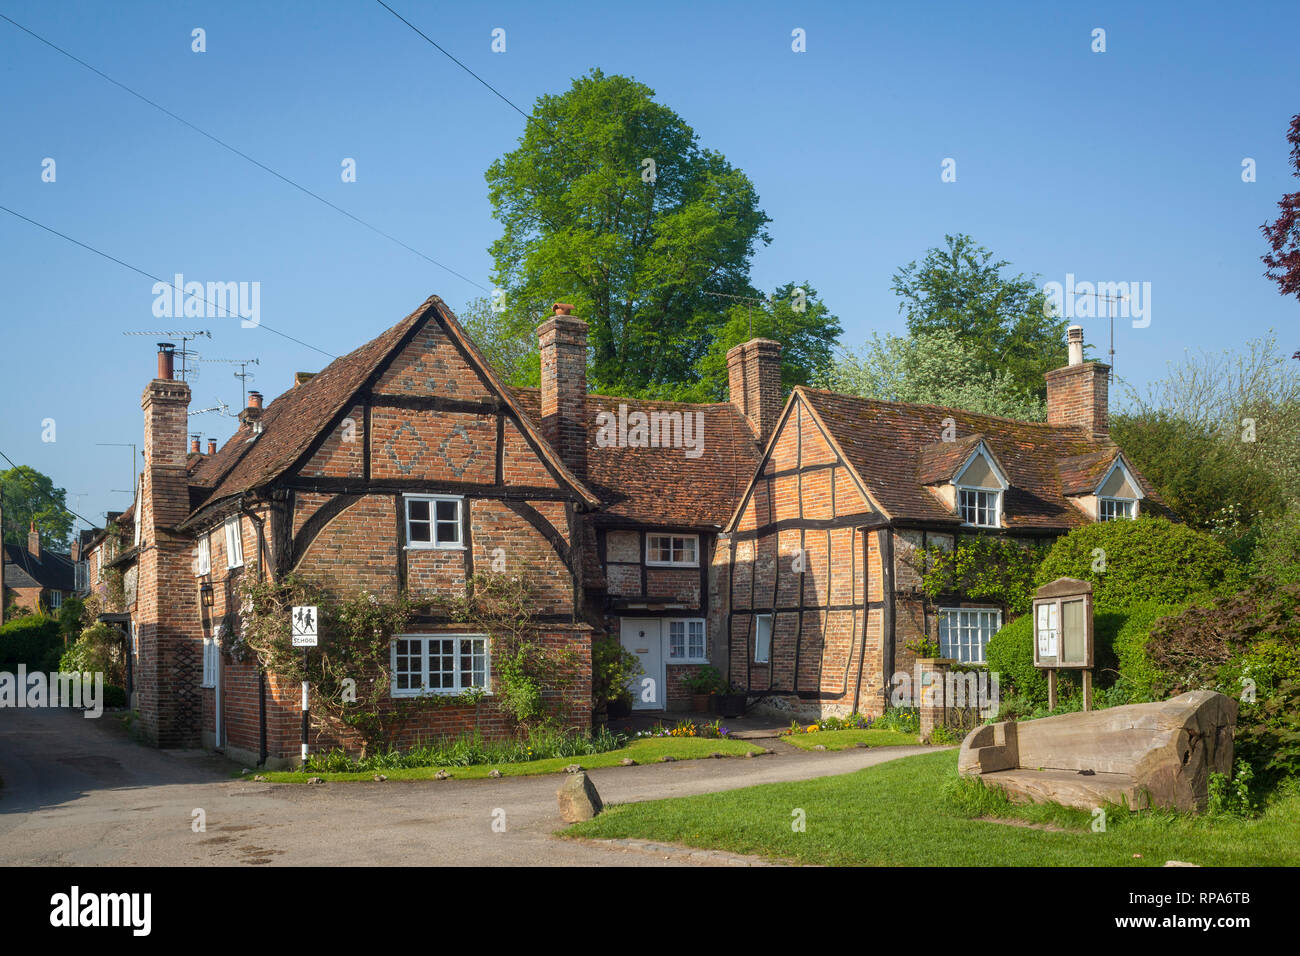 Period cottages opposite the church in Turville, Buckinghamshire. - Stock Image